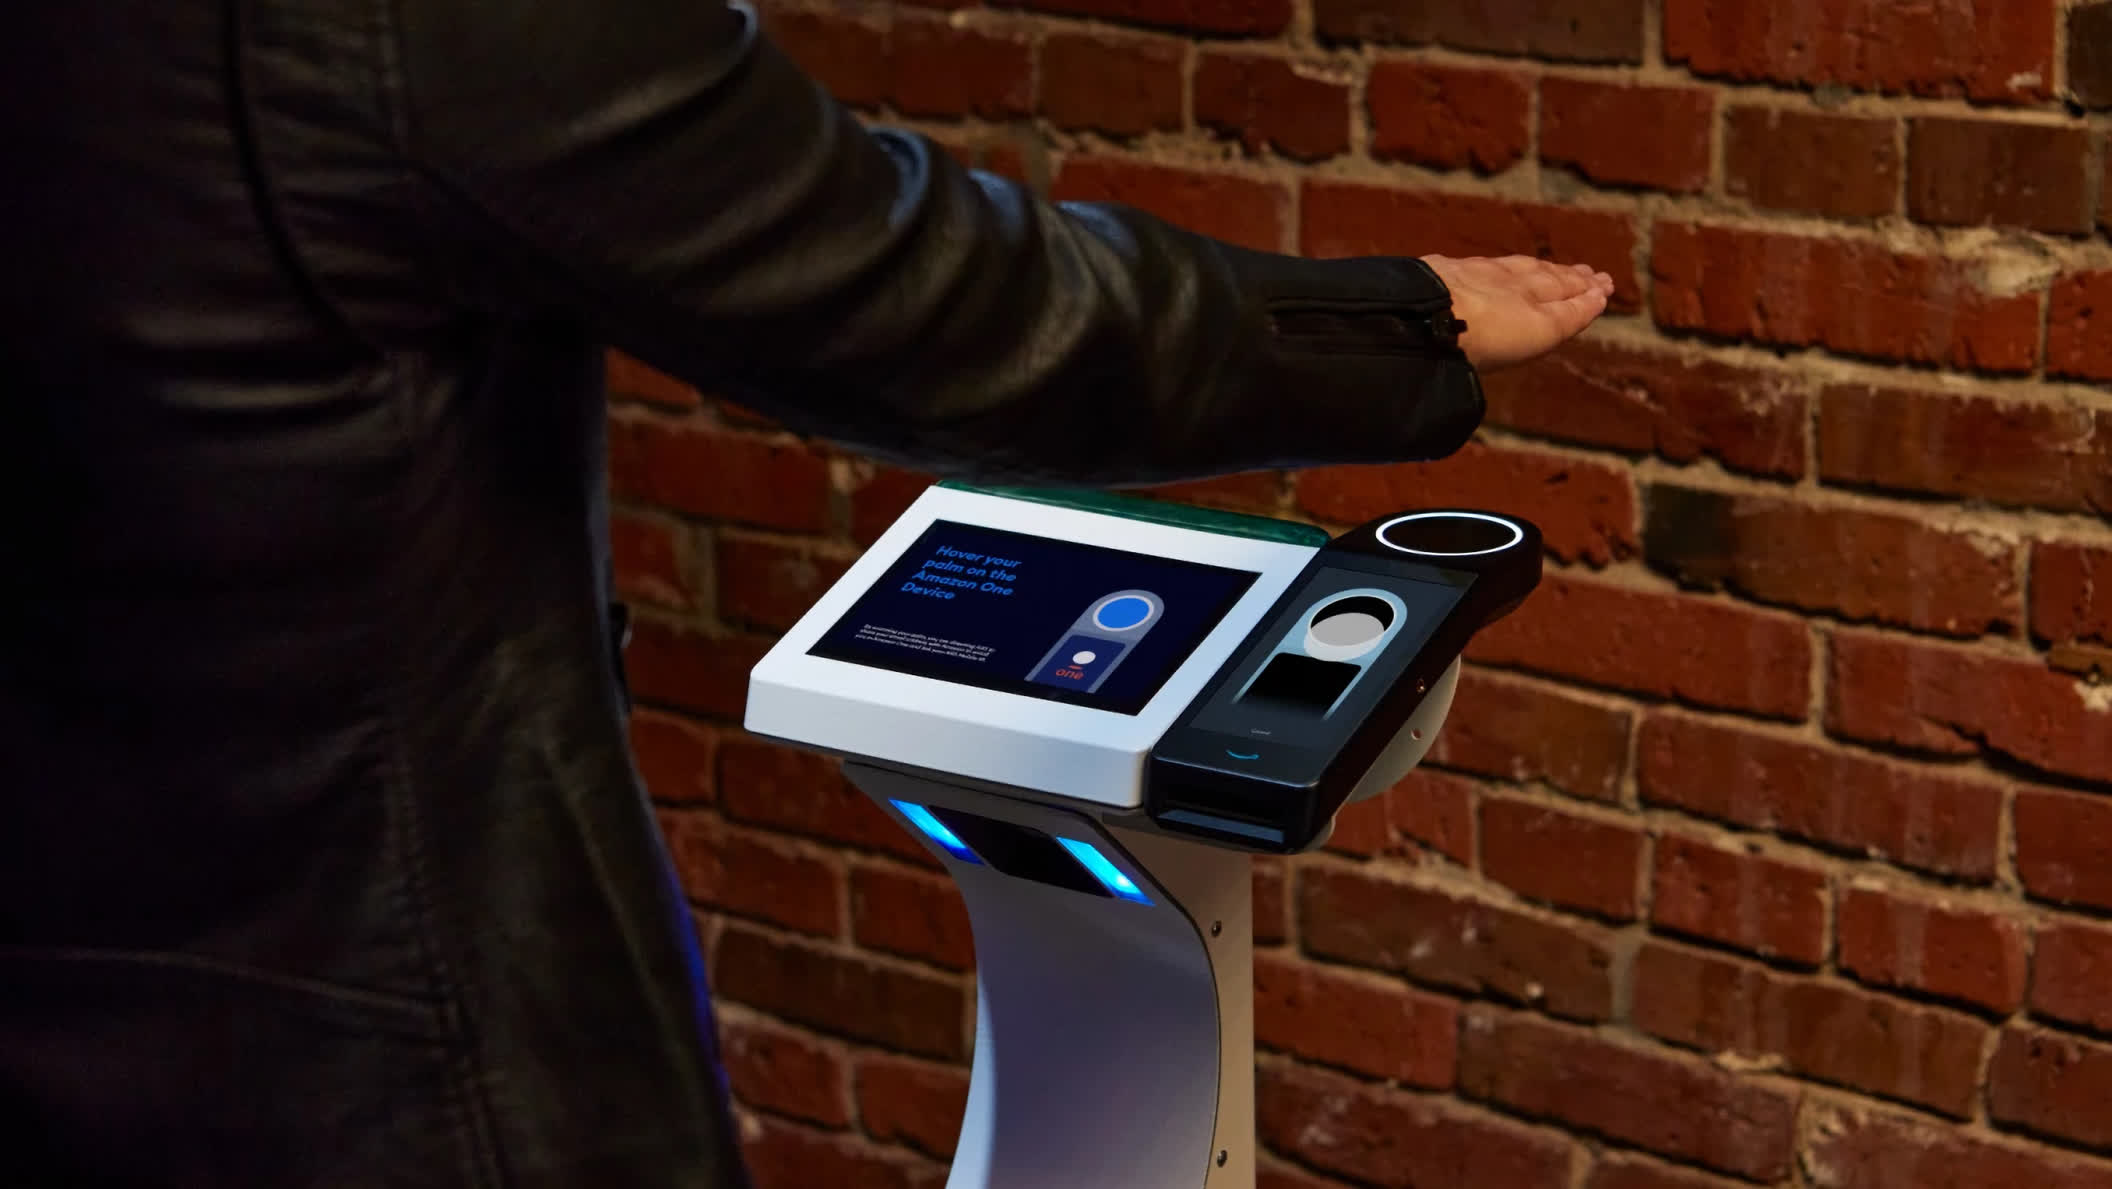 Amazon One palm scanning technology is now being used as admission in events